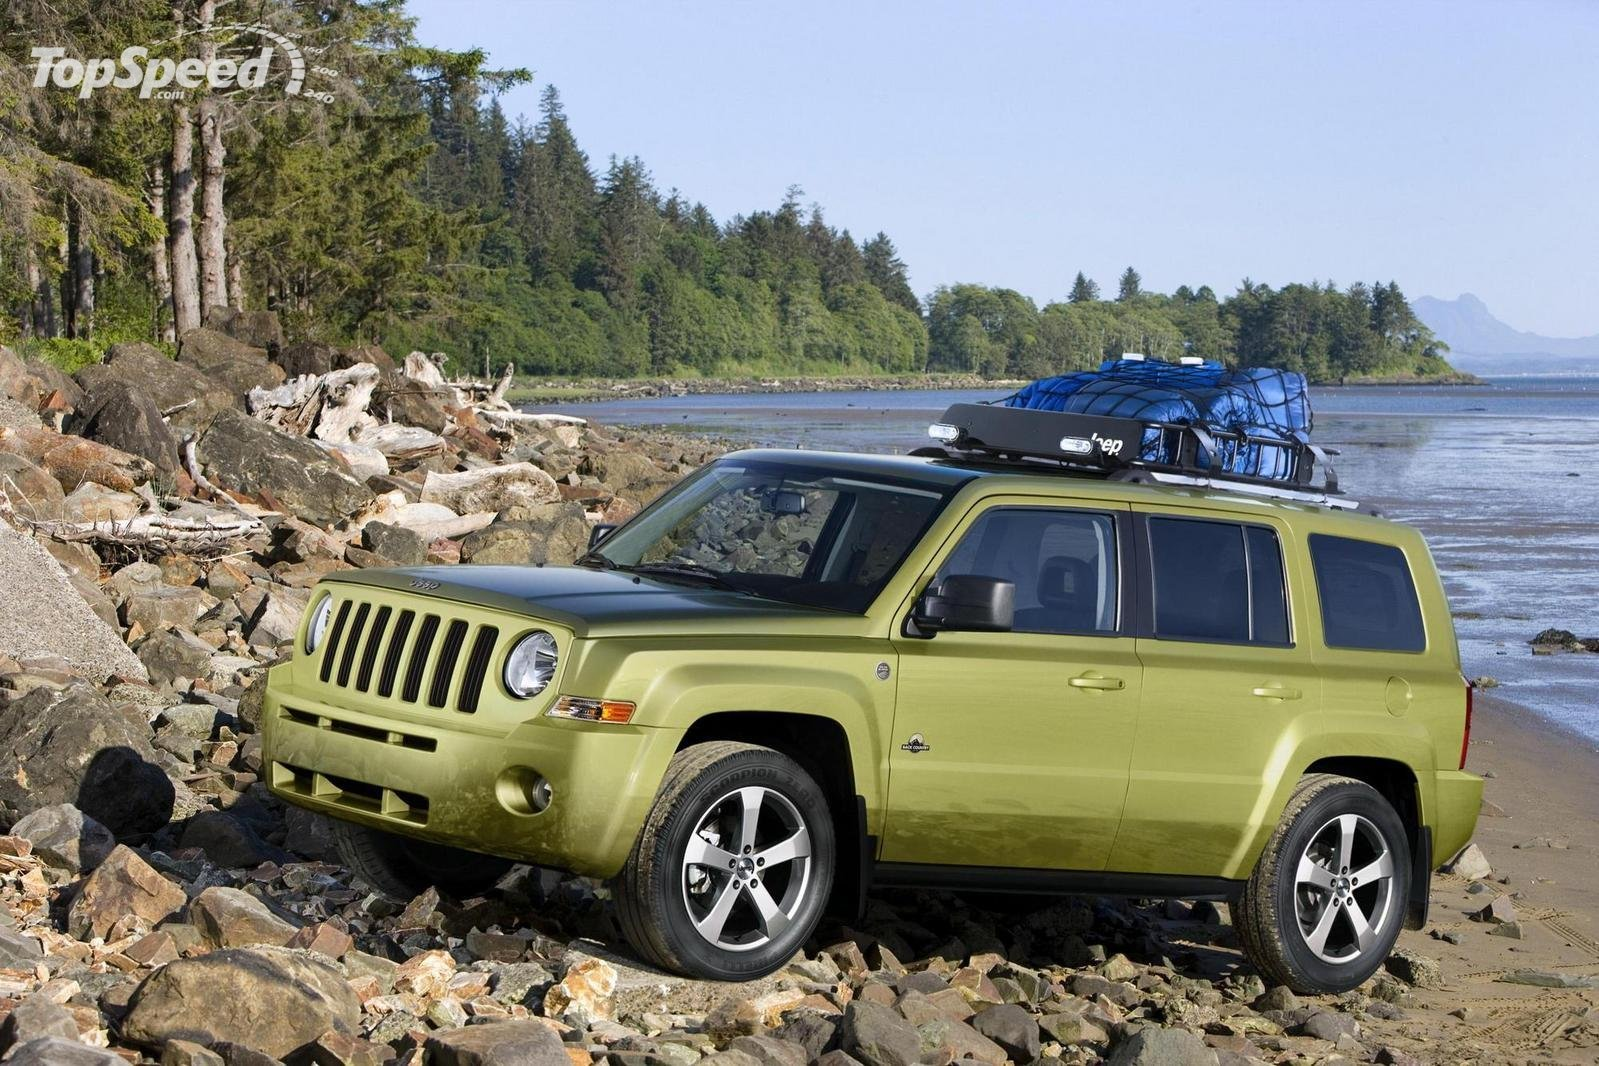 2018 Jeep Patriot Back Country Concept photo - 1